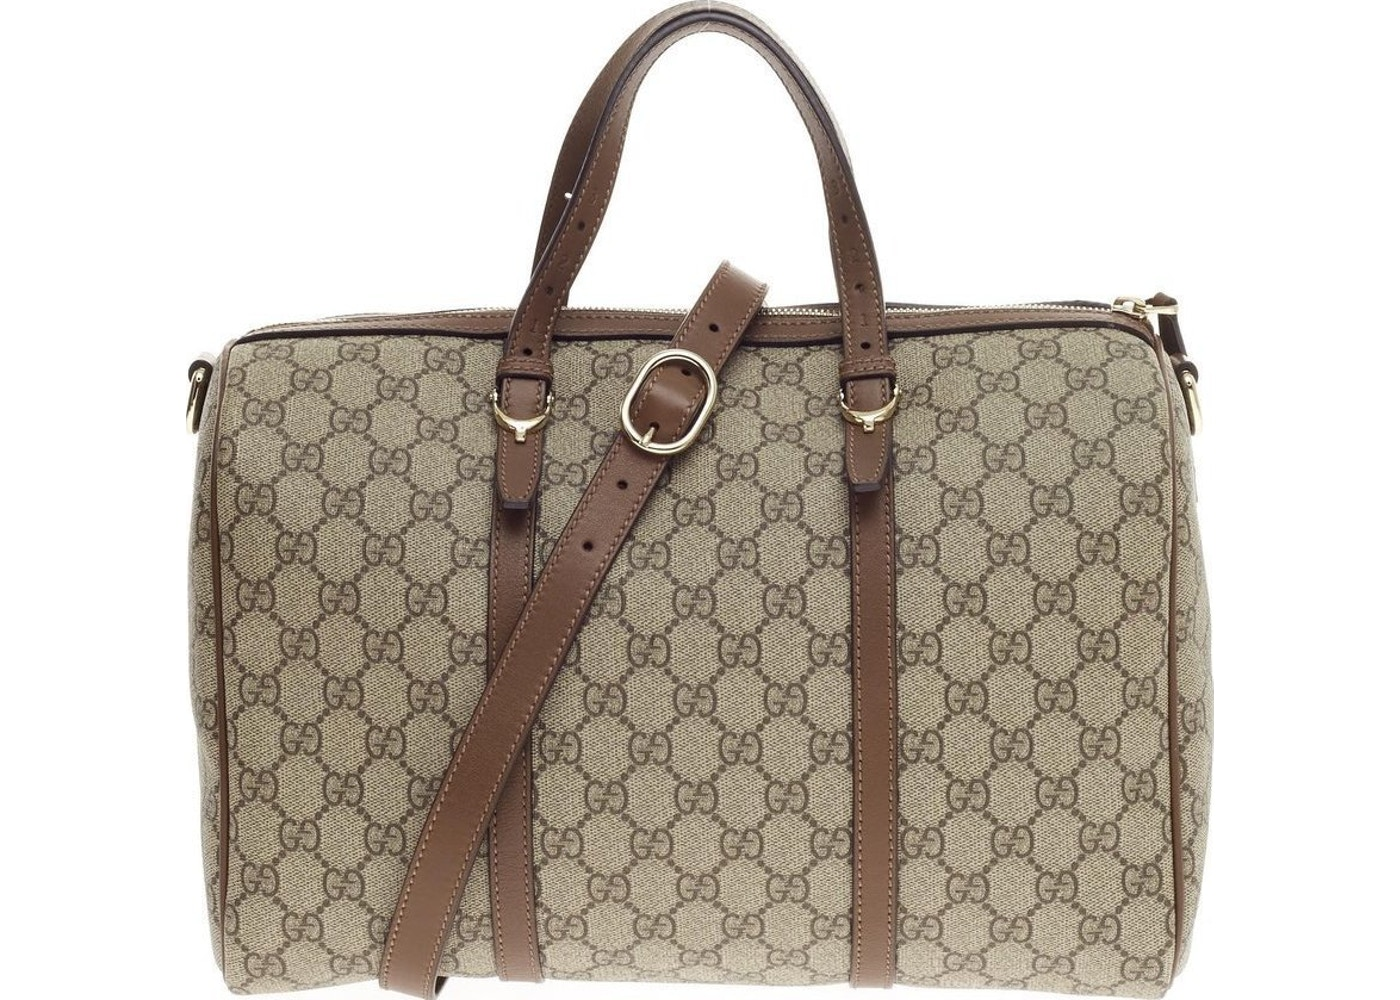 ce6baec79d19 Gucci Boston Bag Dimensions   Stanford Center for Opportunity Policy ...